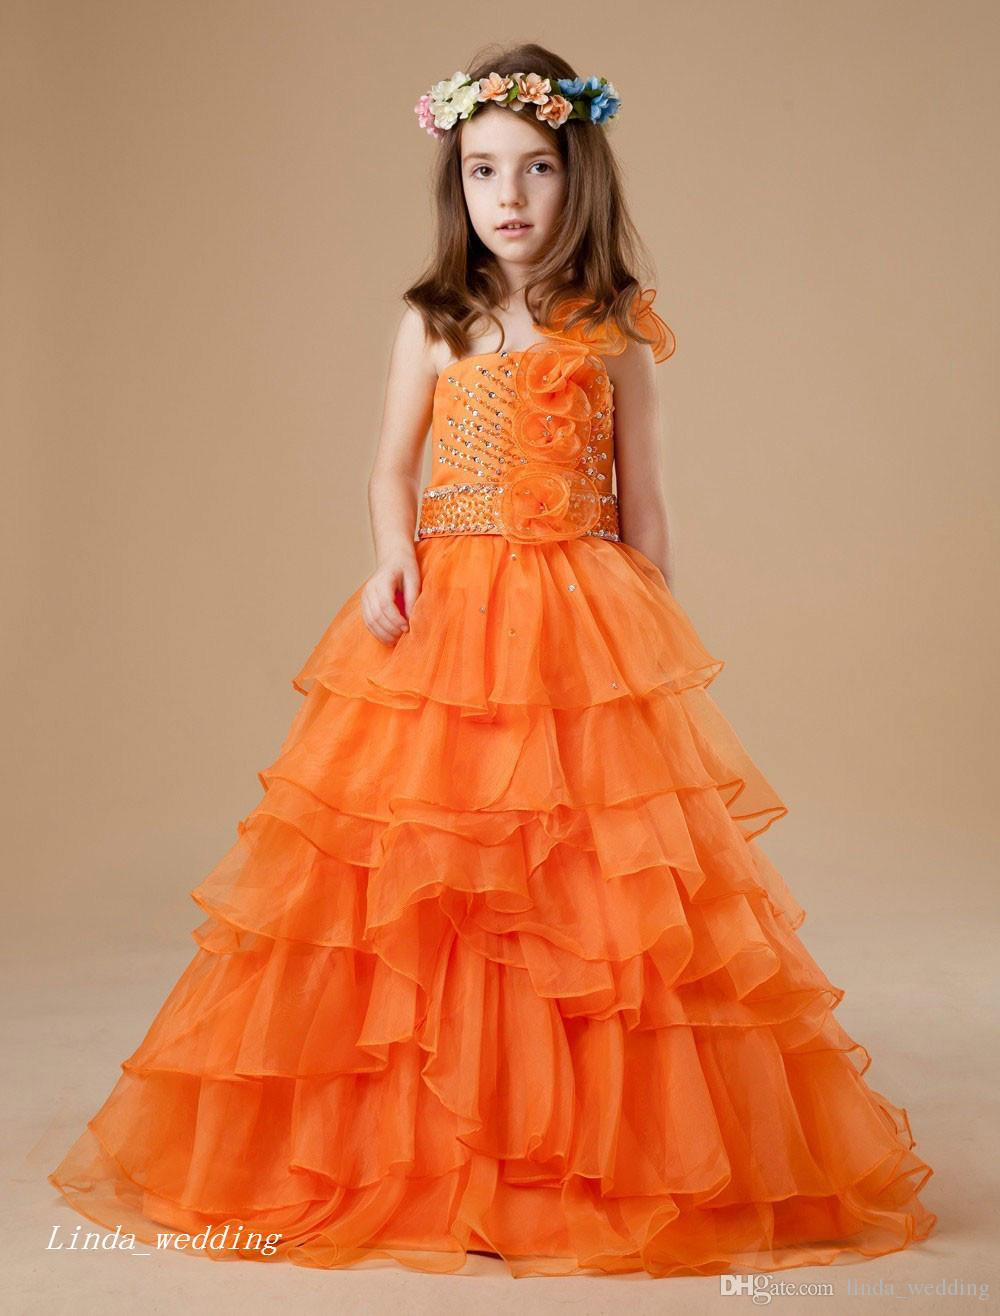 Cute Orange Colour Girl's Pageant Dress Princess Ball Gown Party Cupcake Prom Dress For Short Girl Pretty Dress For Little Kid